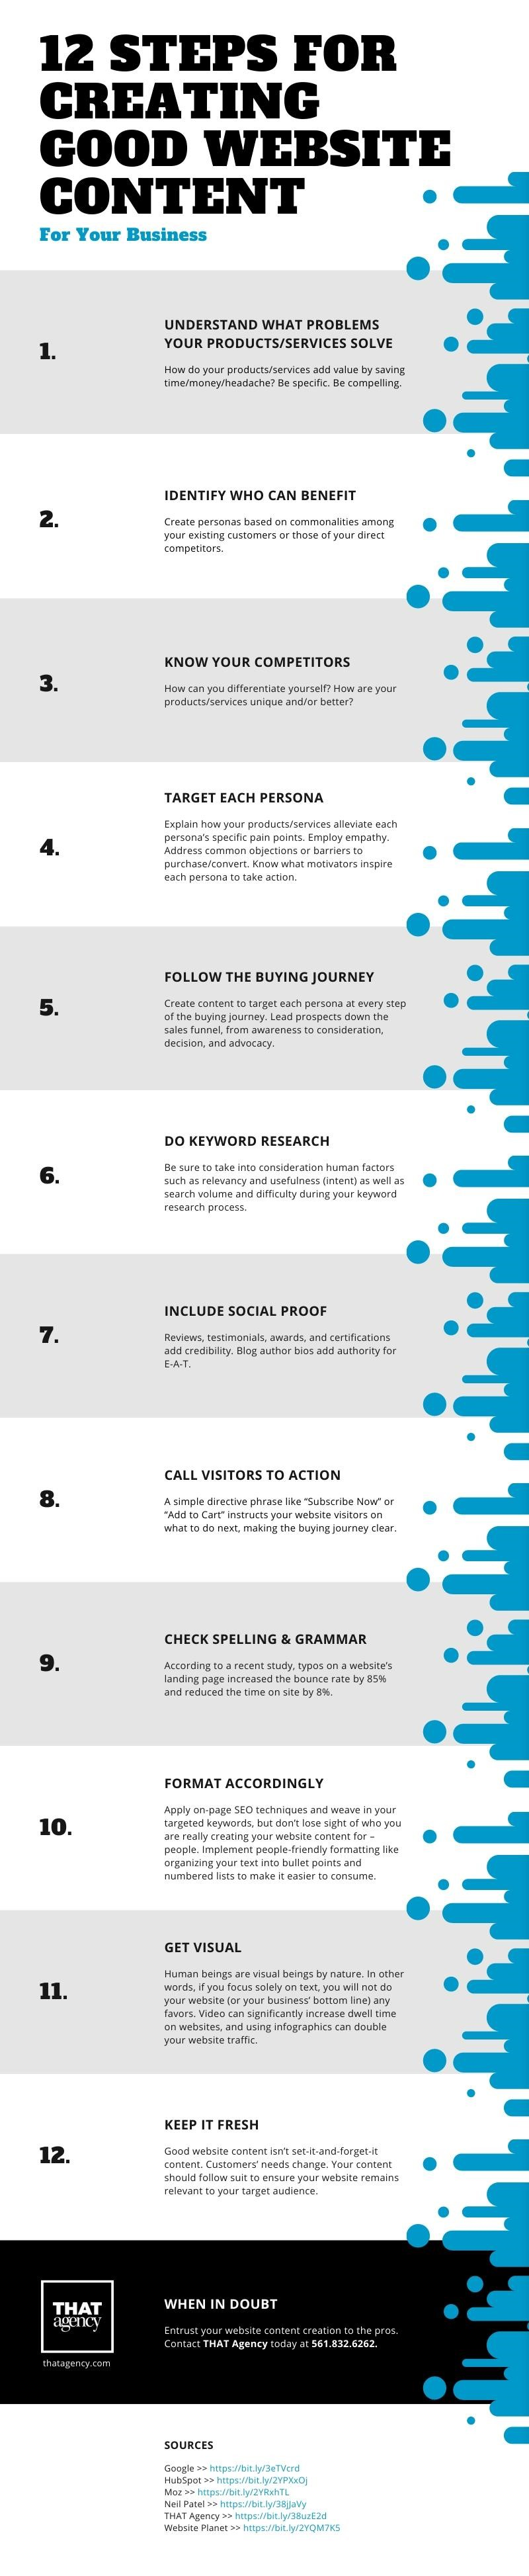 12 Steps for Creating Good Website Content Infographic